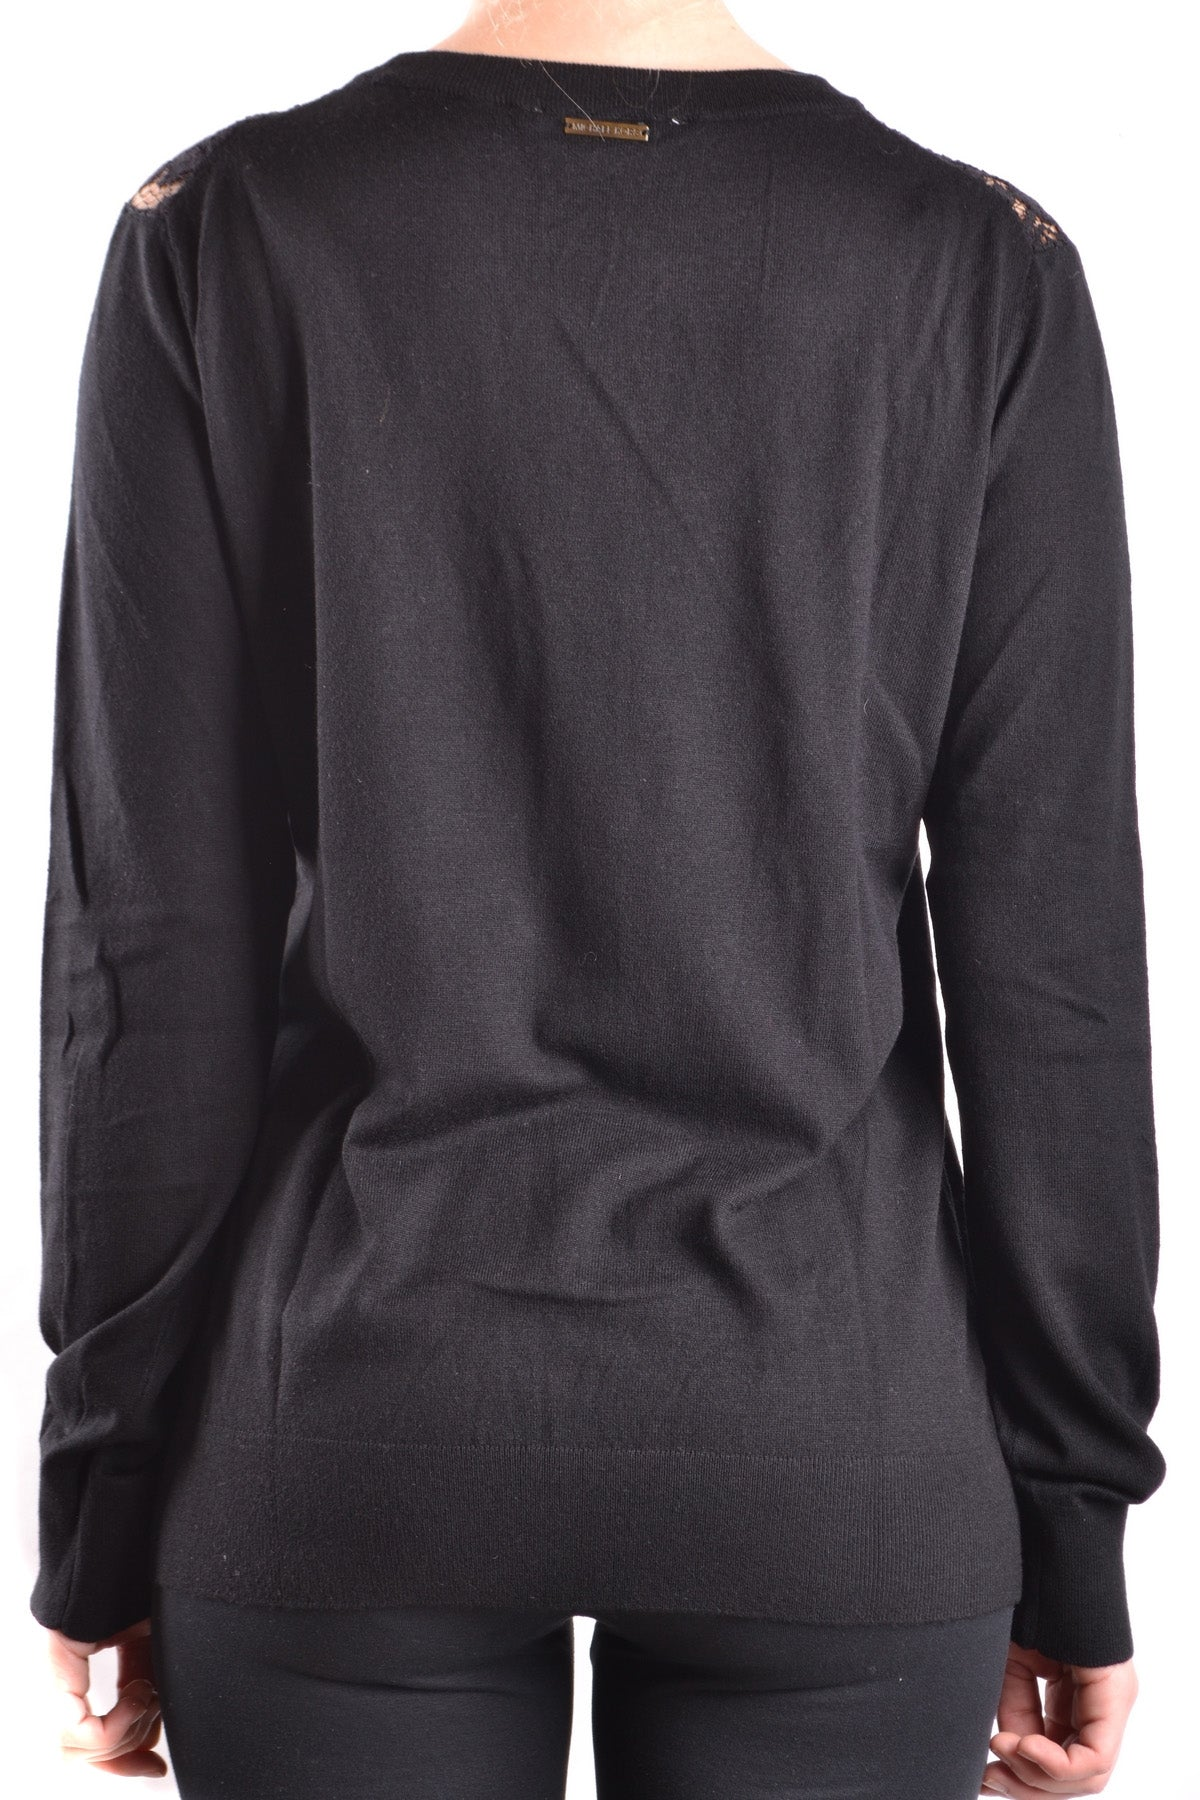 Tshirt Long Sleeves Michael Kors-Long sleeves - WOMAN-Product Details Terms: New With LabelYear: 2017Main Color: BlackGender: WomanMade In: ChinaSize: IntSeason: Fall / WinterClothing Type: Sweater Composition: Nylon 28%, Polyester 26%, Viscose 40%-Keyomi-Sook